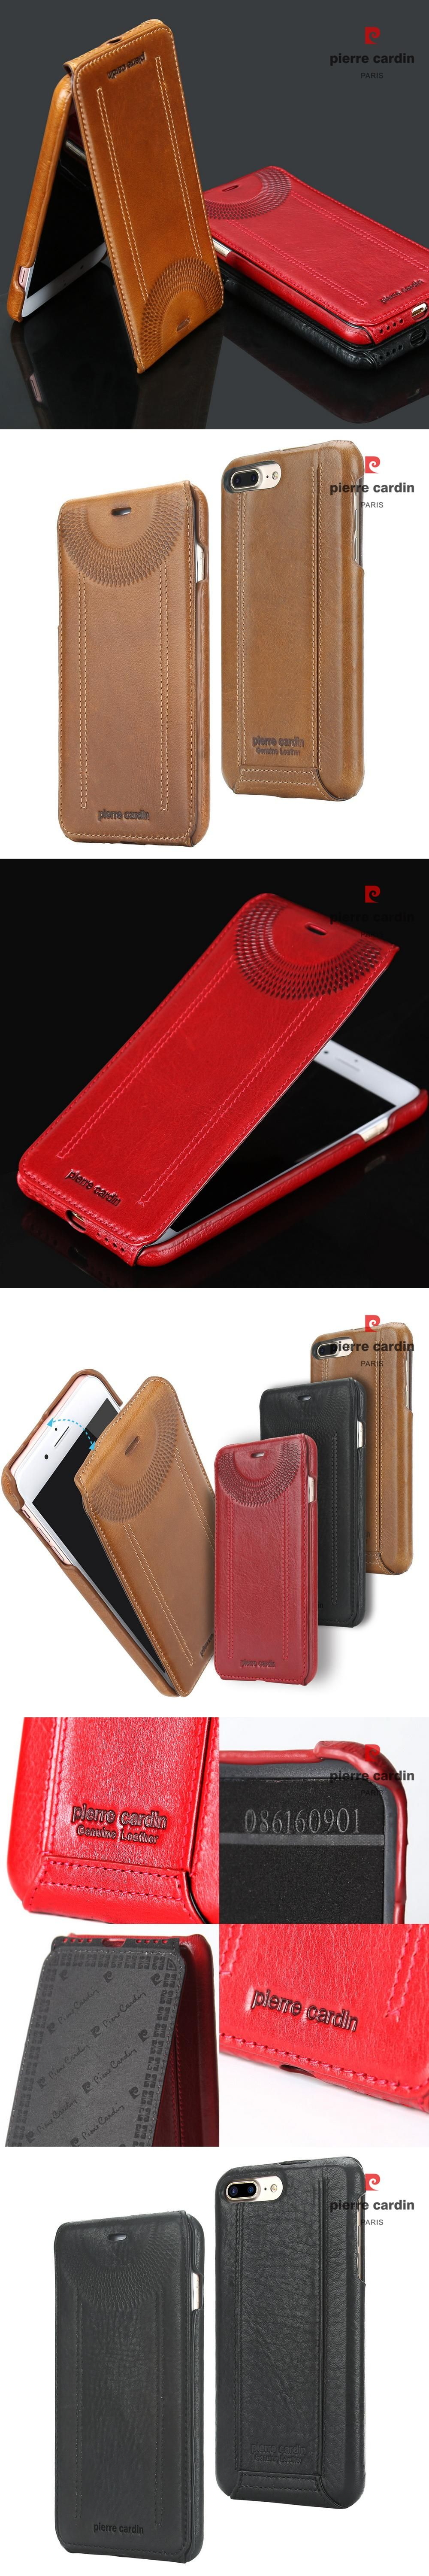 Pierre Cardin Original Mobile Phone Case Cover For Iphone 5 5s Se 6 Baseus Sky 6s 7 Plus Genuine Leather Up And Down Flip